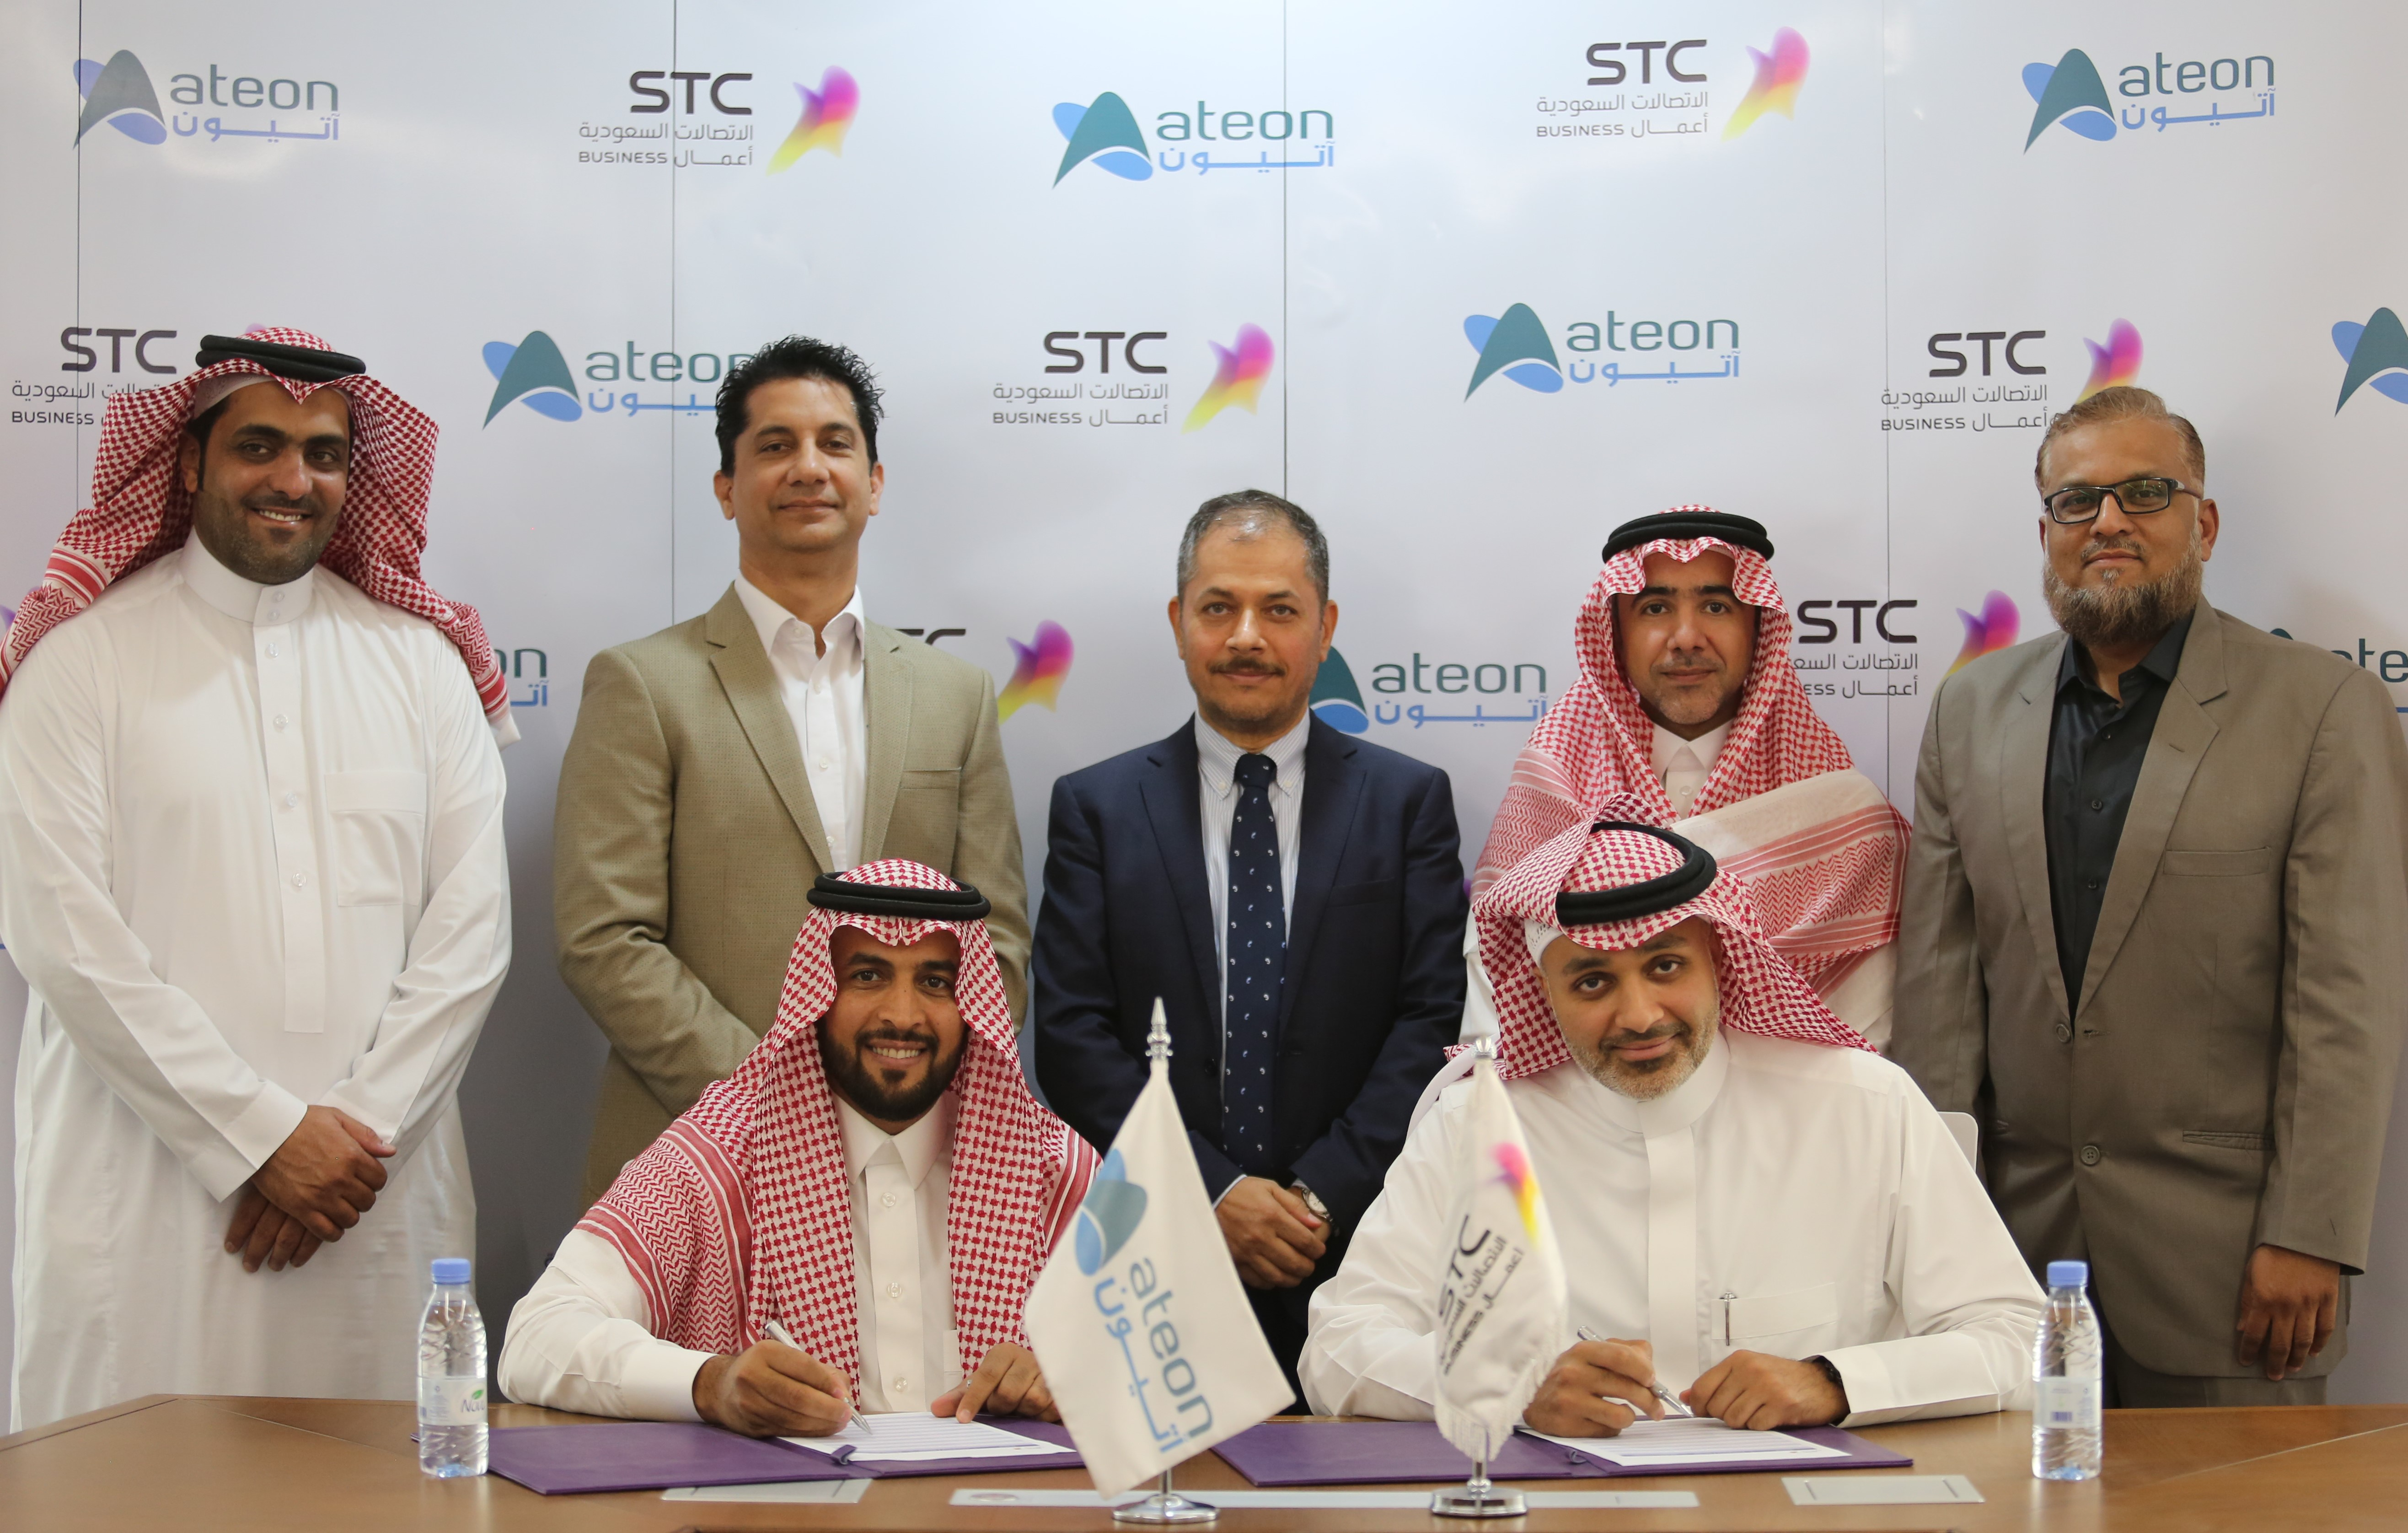 STC Business Partners with Ateon to Accelerate Digital Transformation in Saudi Arabia